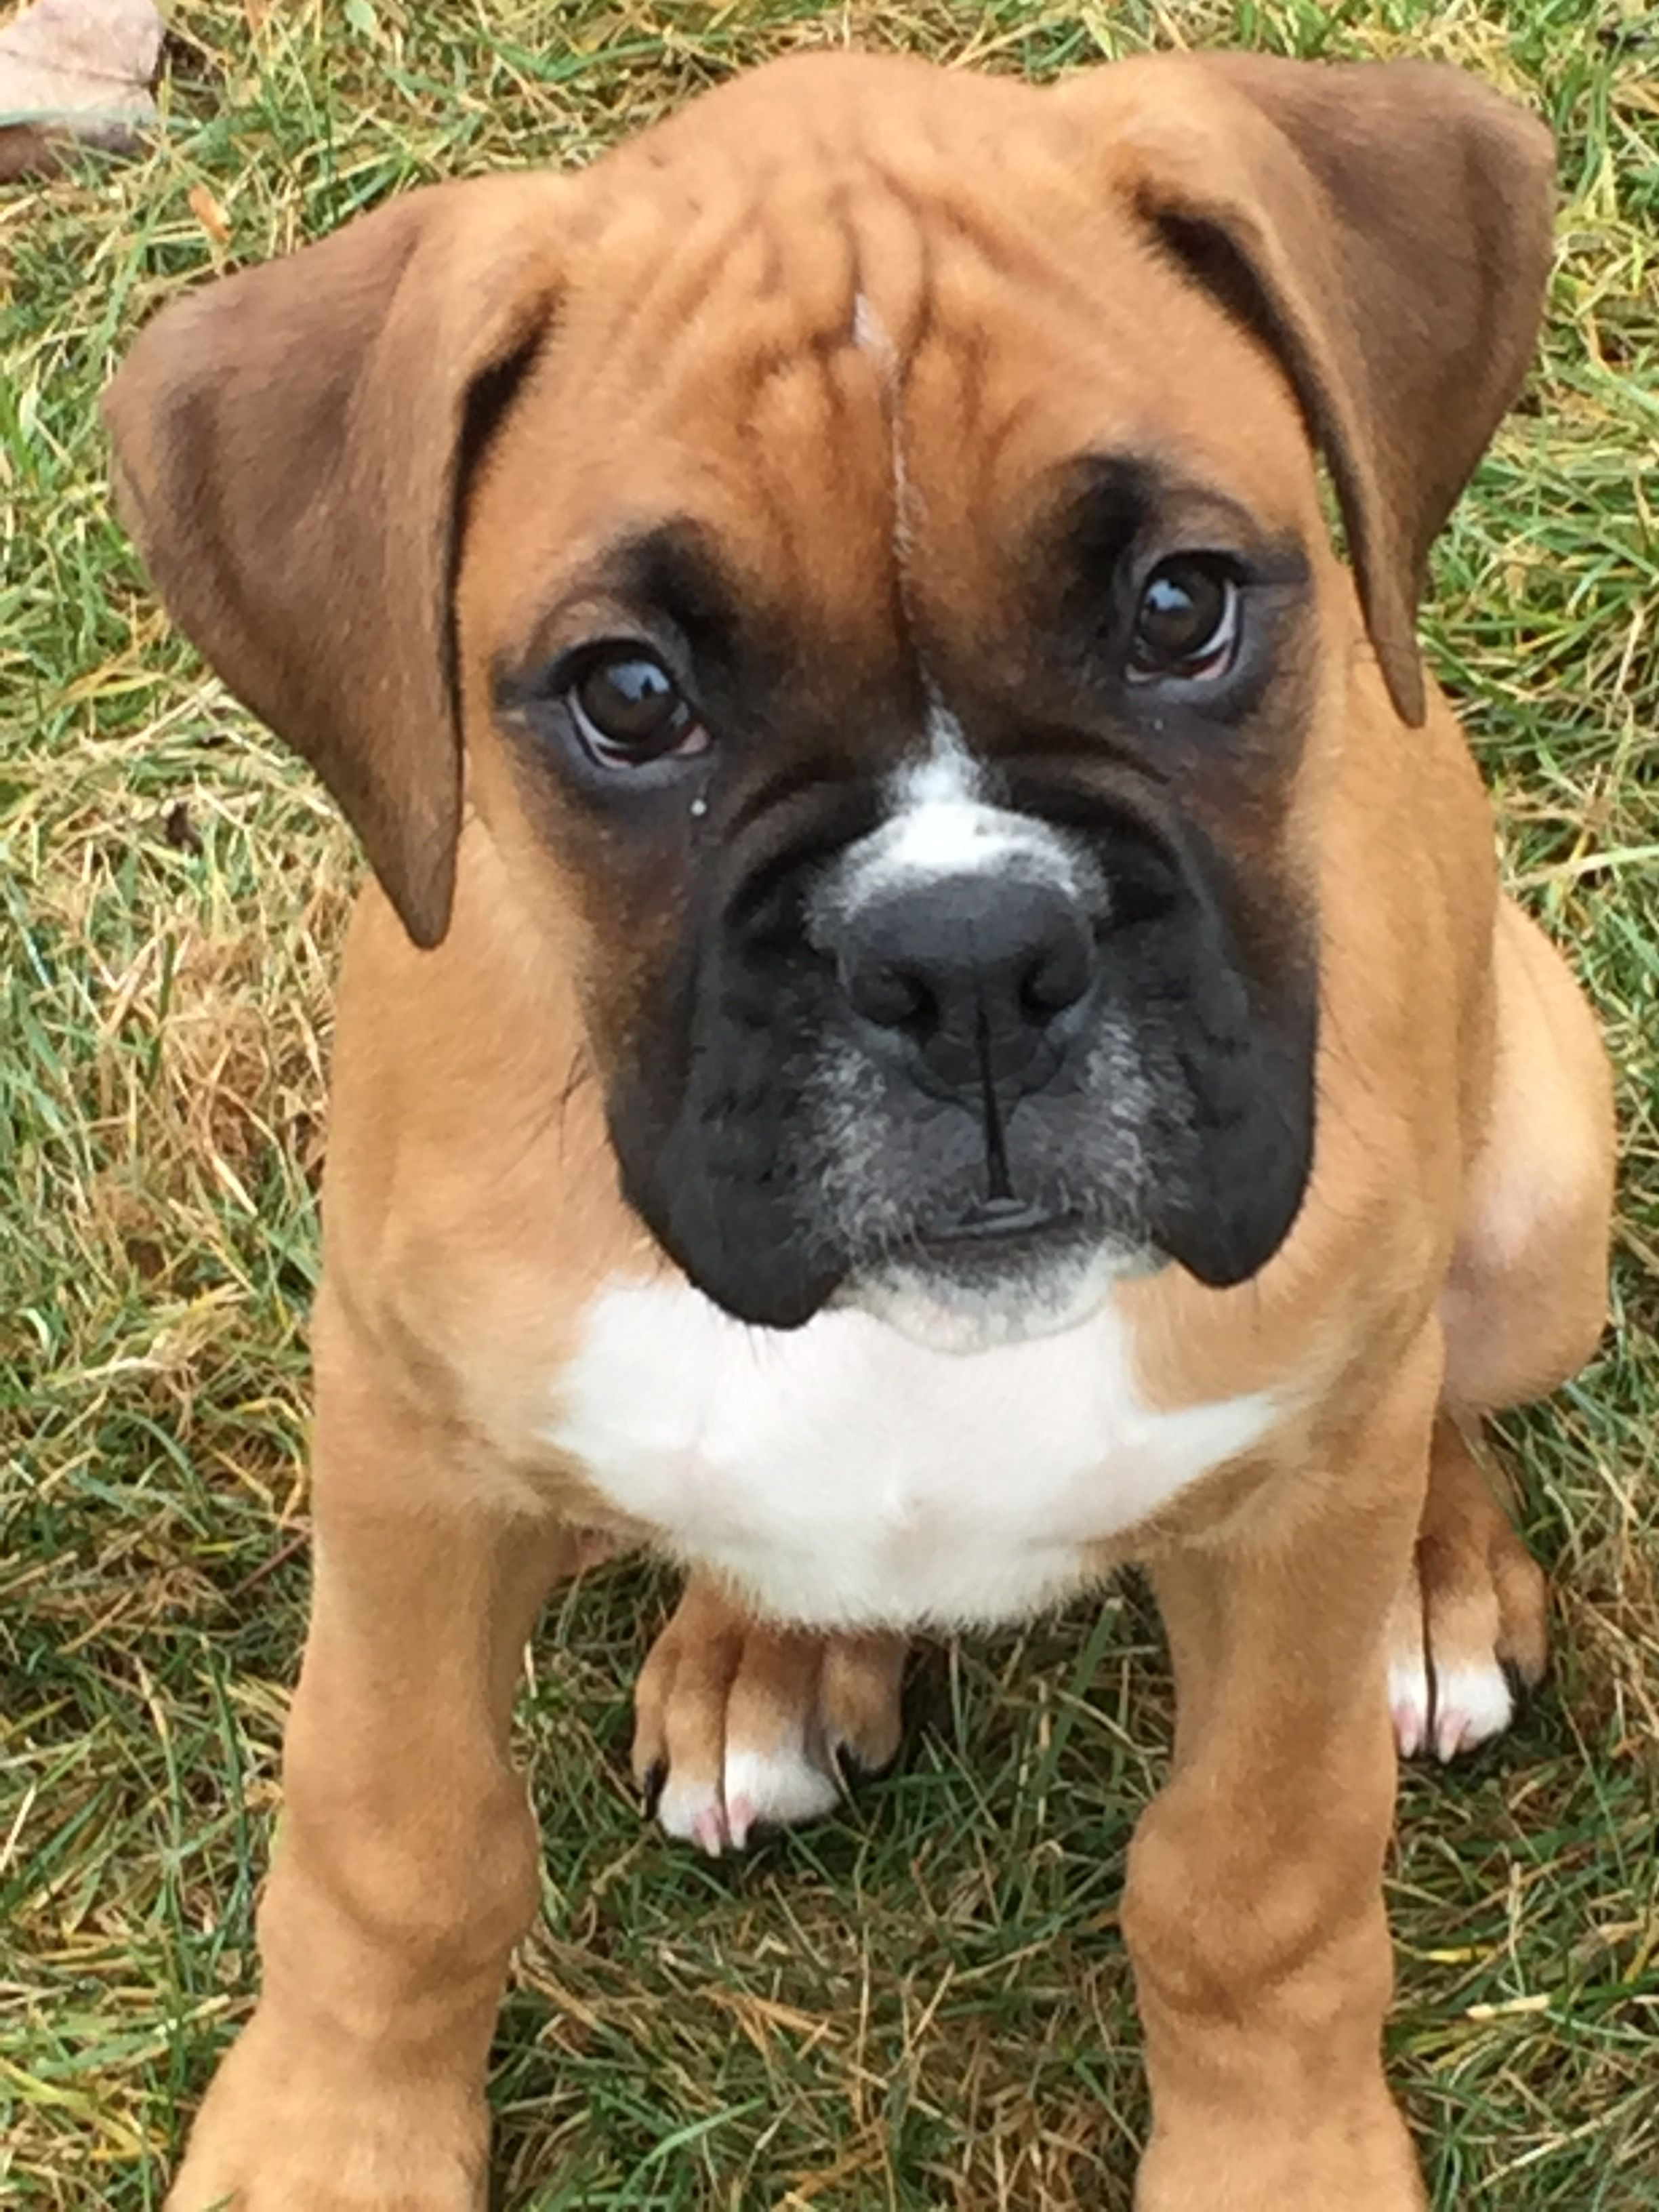 A Good Looking Boxer Pup I Love The White Marking Just Behind The Nose On Top Running Up Between The Eyes Boxer Puppies Boxer Dogs Boxer Dogs Brindle